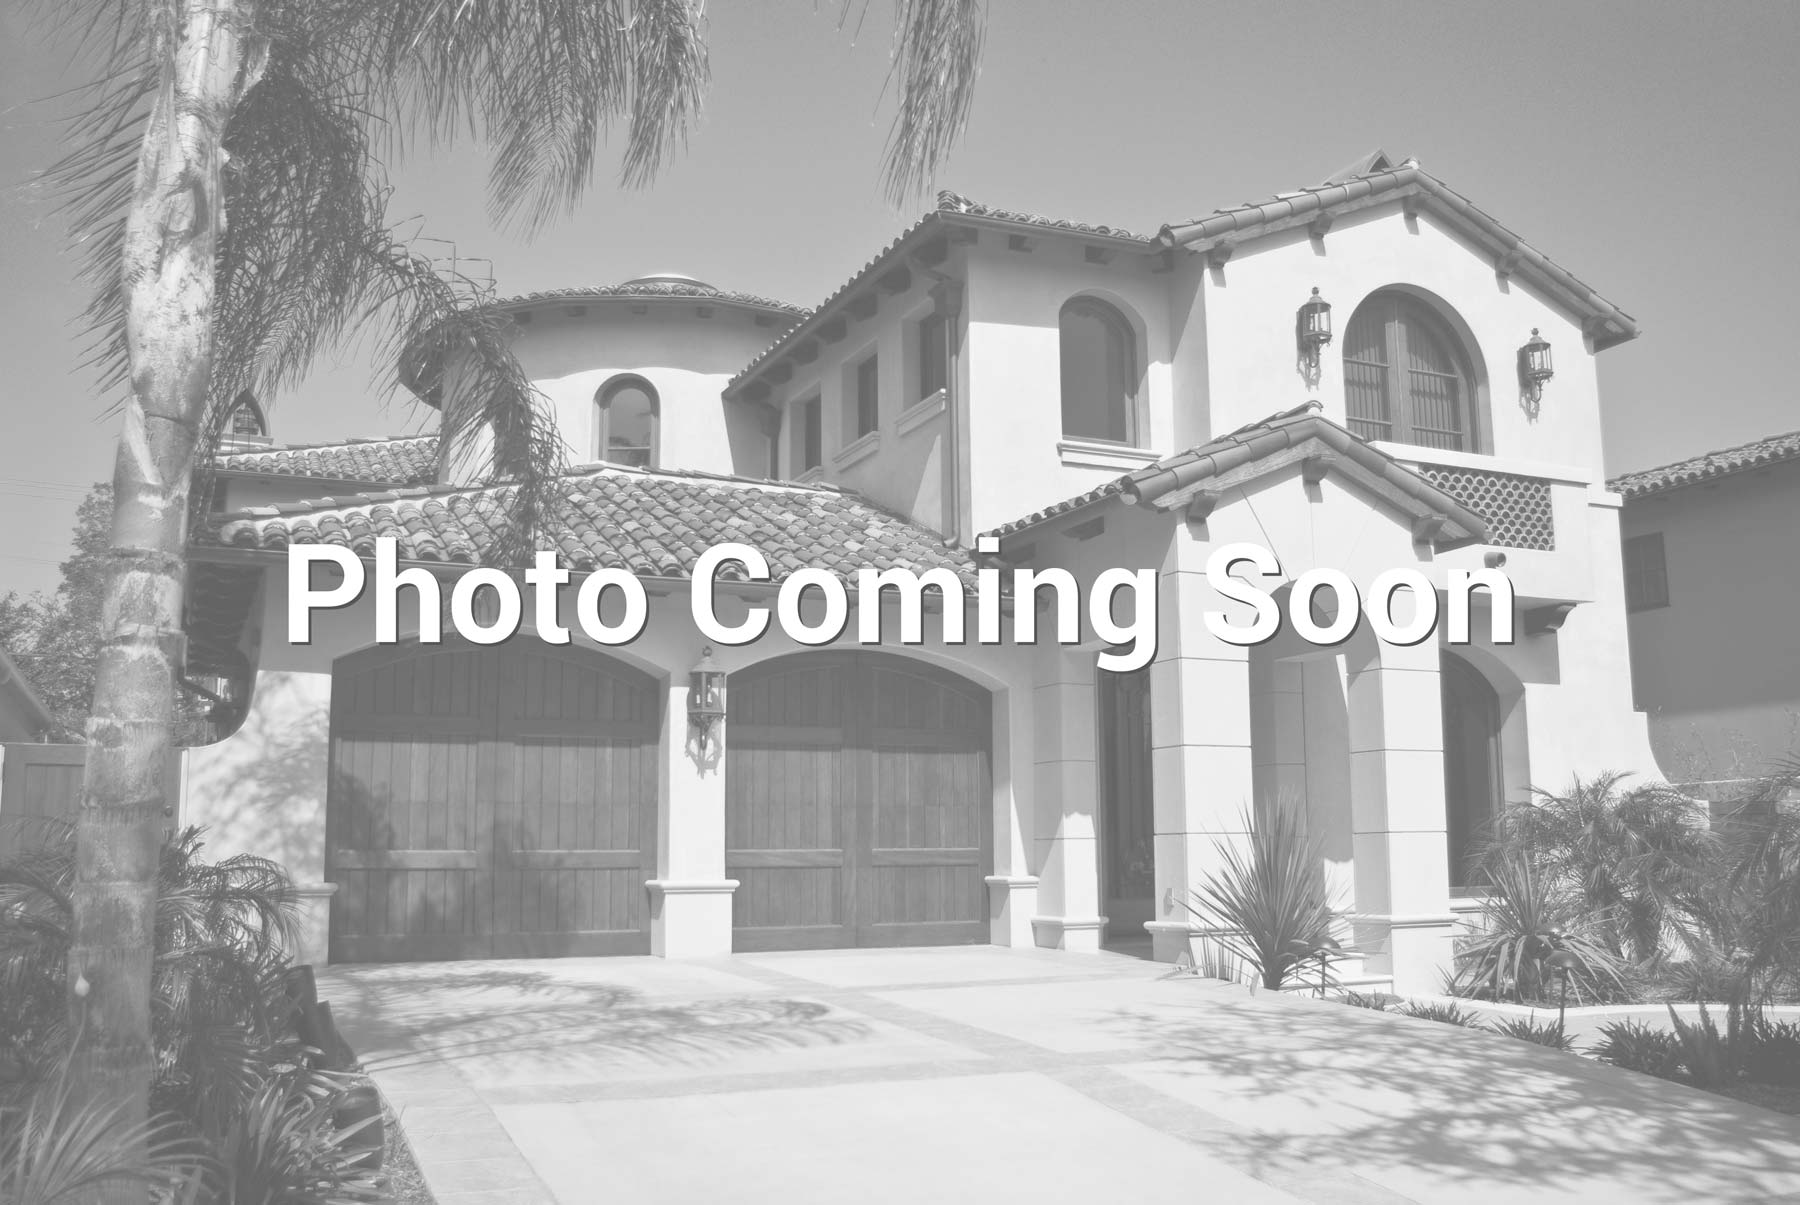 $373,000 - 3Br/2Ba - Home for Sale in Segretto Amd, Gilbert